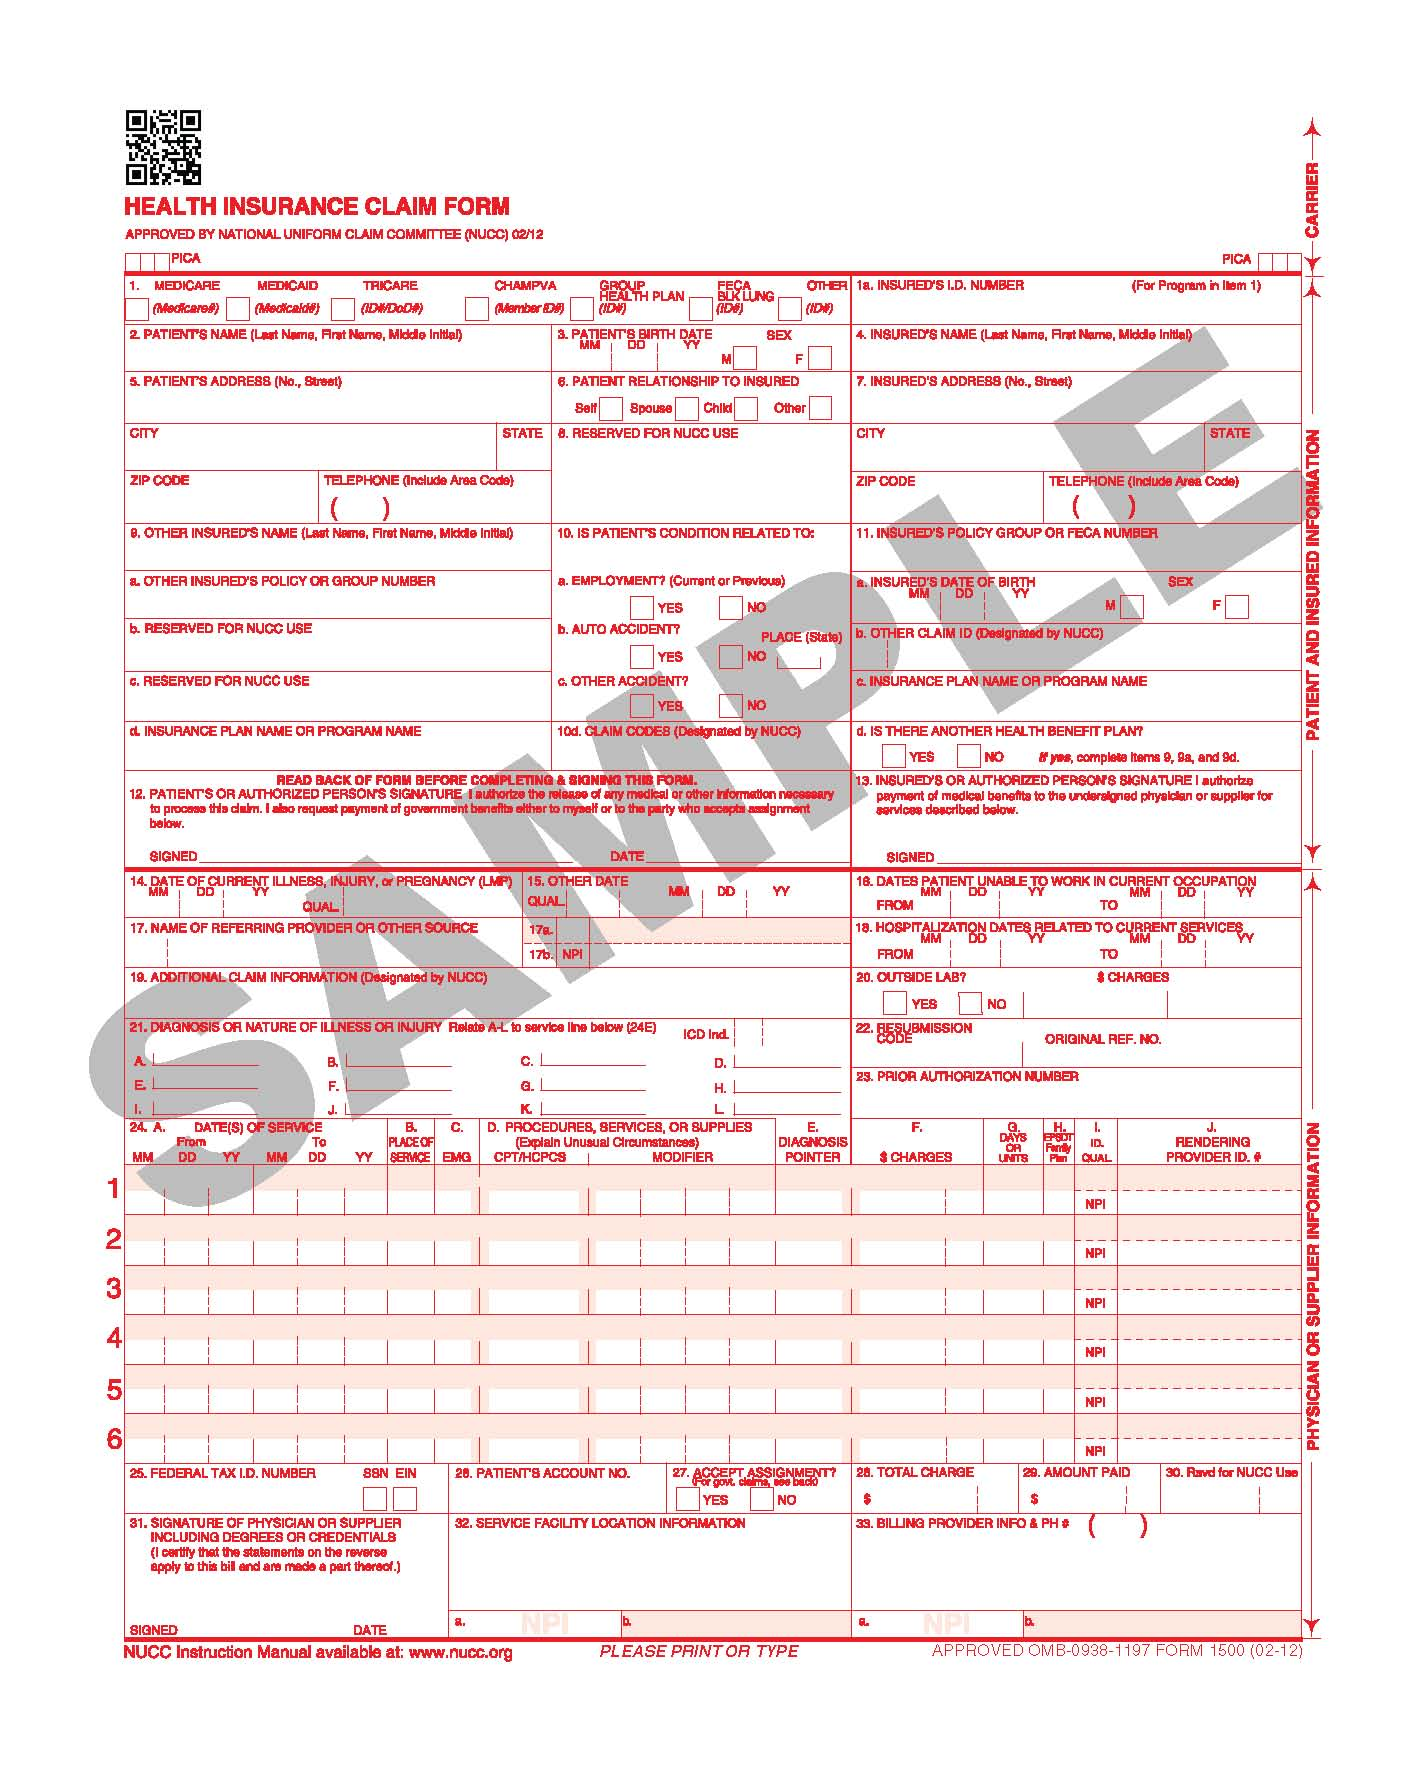 Fillable Cms 1500 Claim Form 0212 | Universal Network